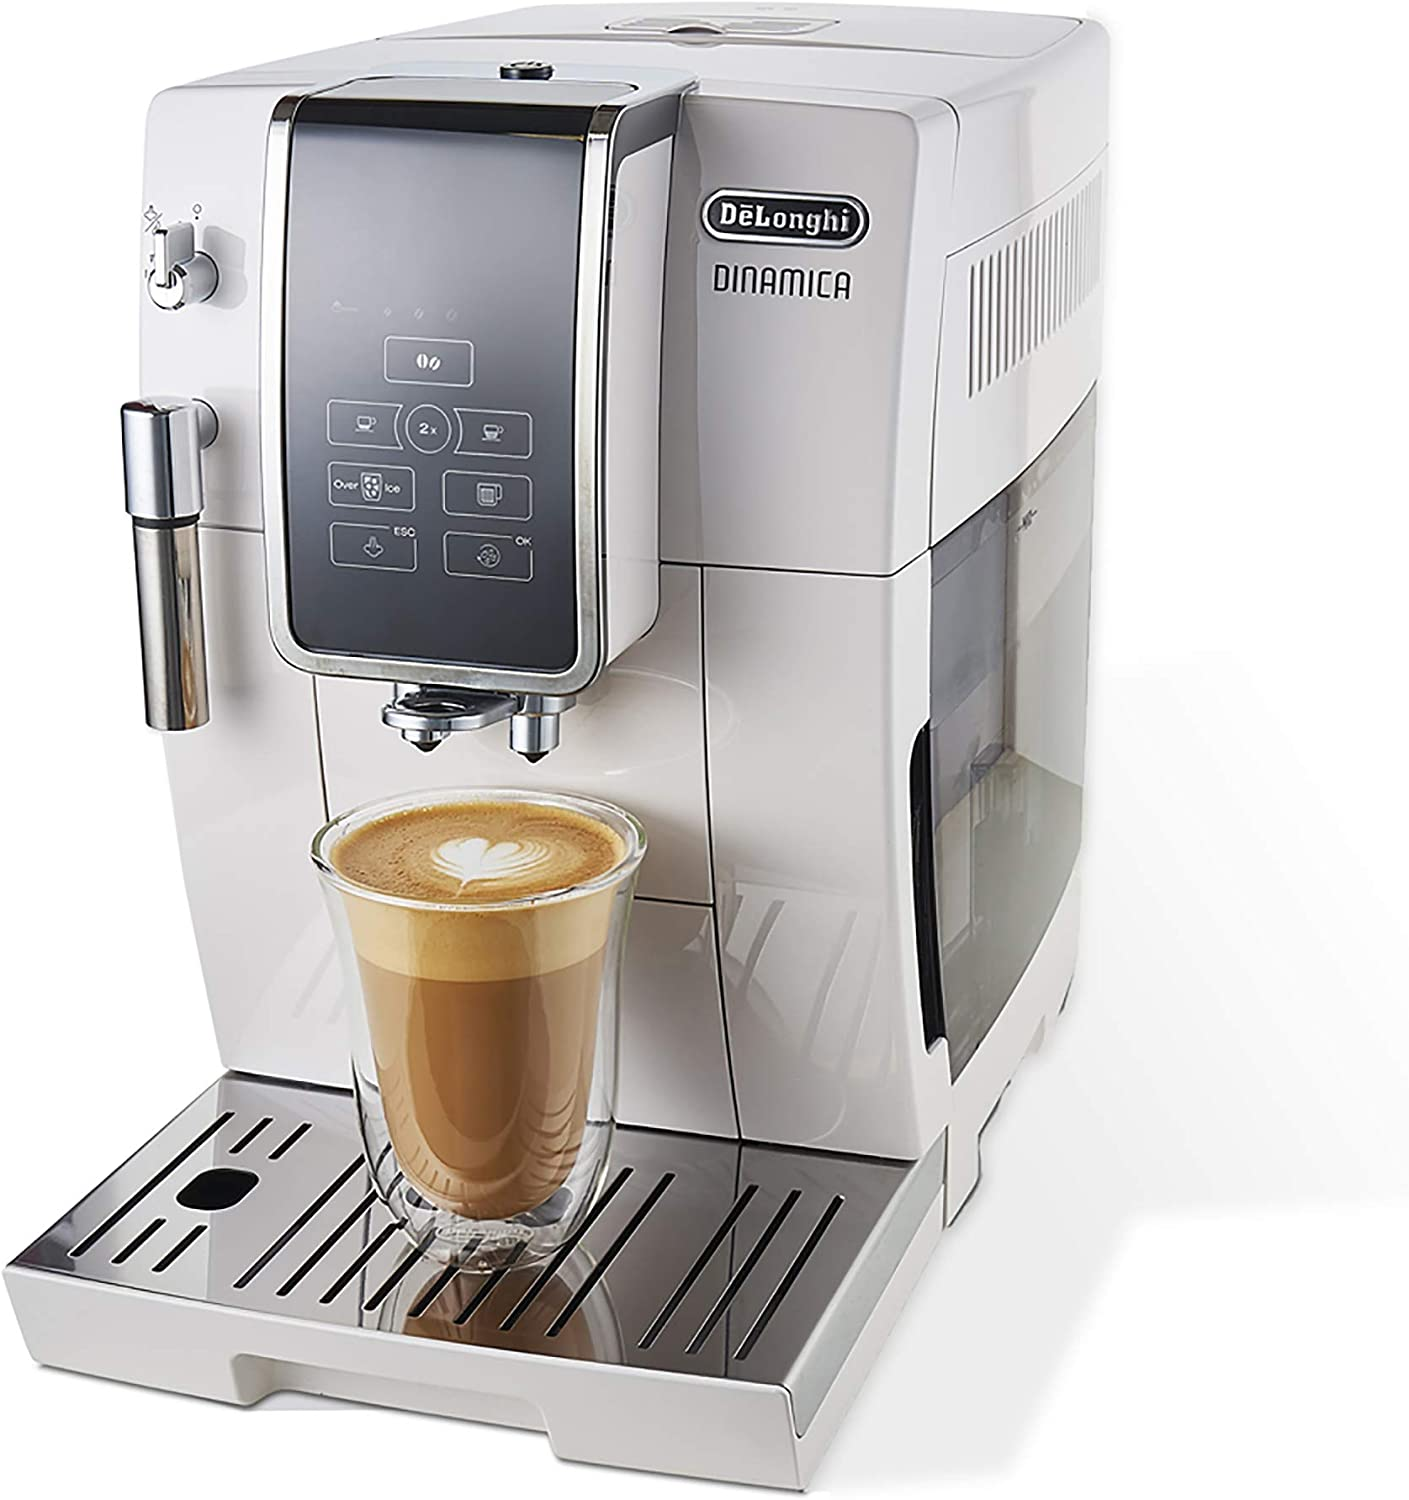 De'Longhi Dinamica Automatic Coffee